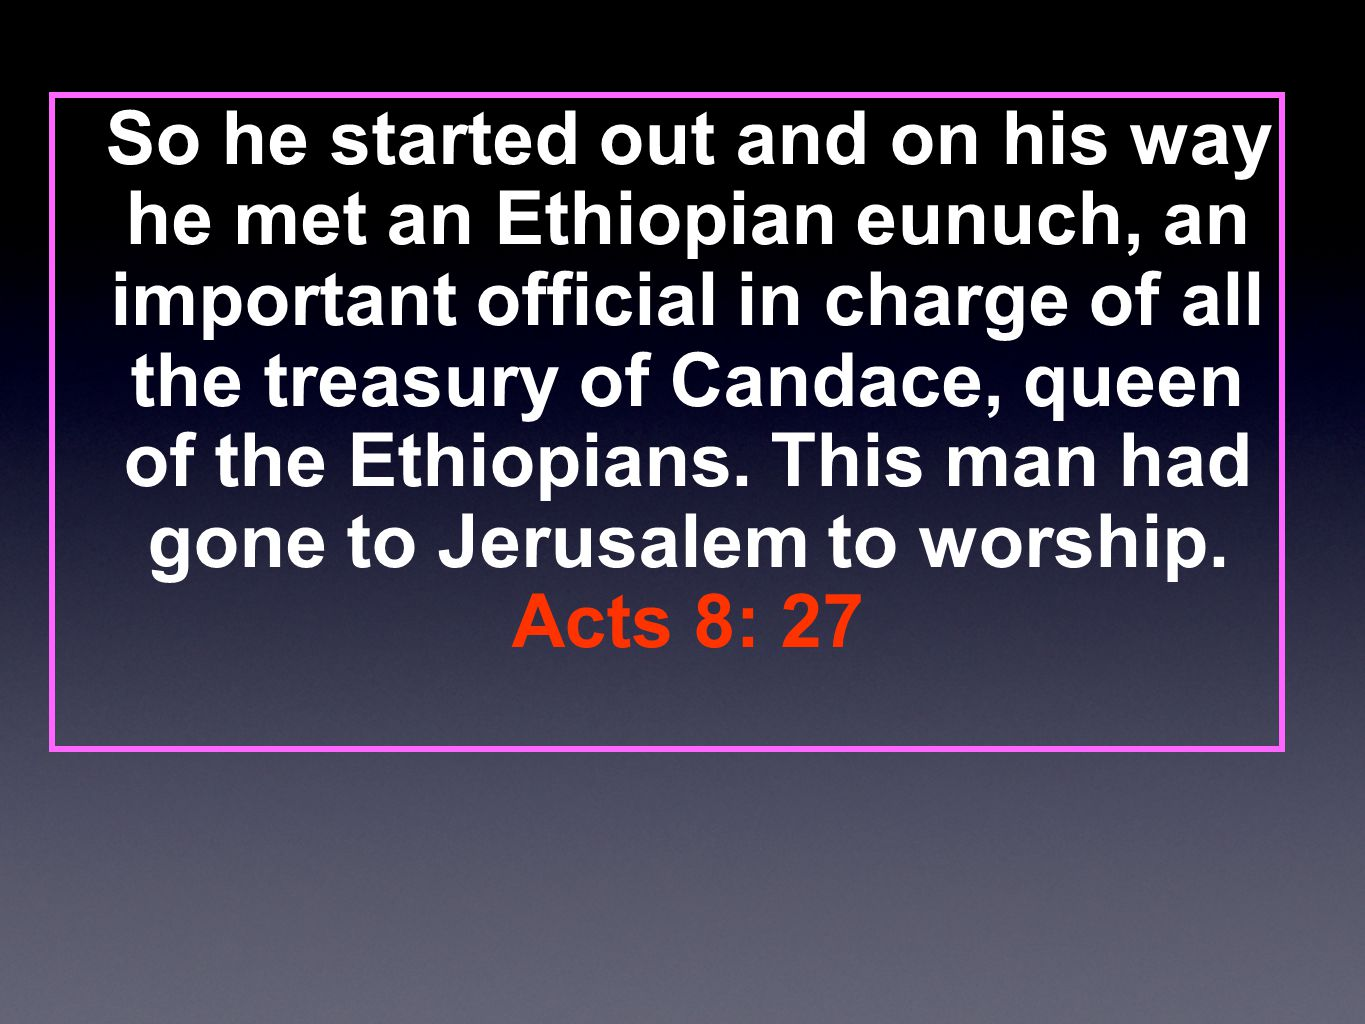 So he started out and on his way he met an Ethiopian eunuch, an important official in charge of all the treasury of Candace, queen of the Ethiopians.